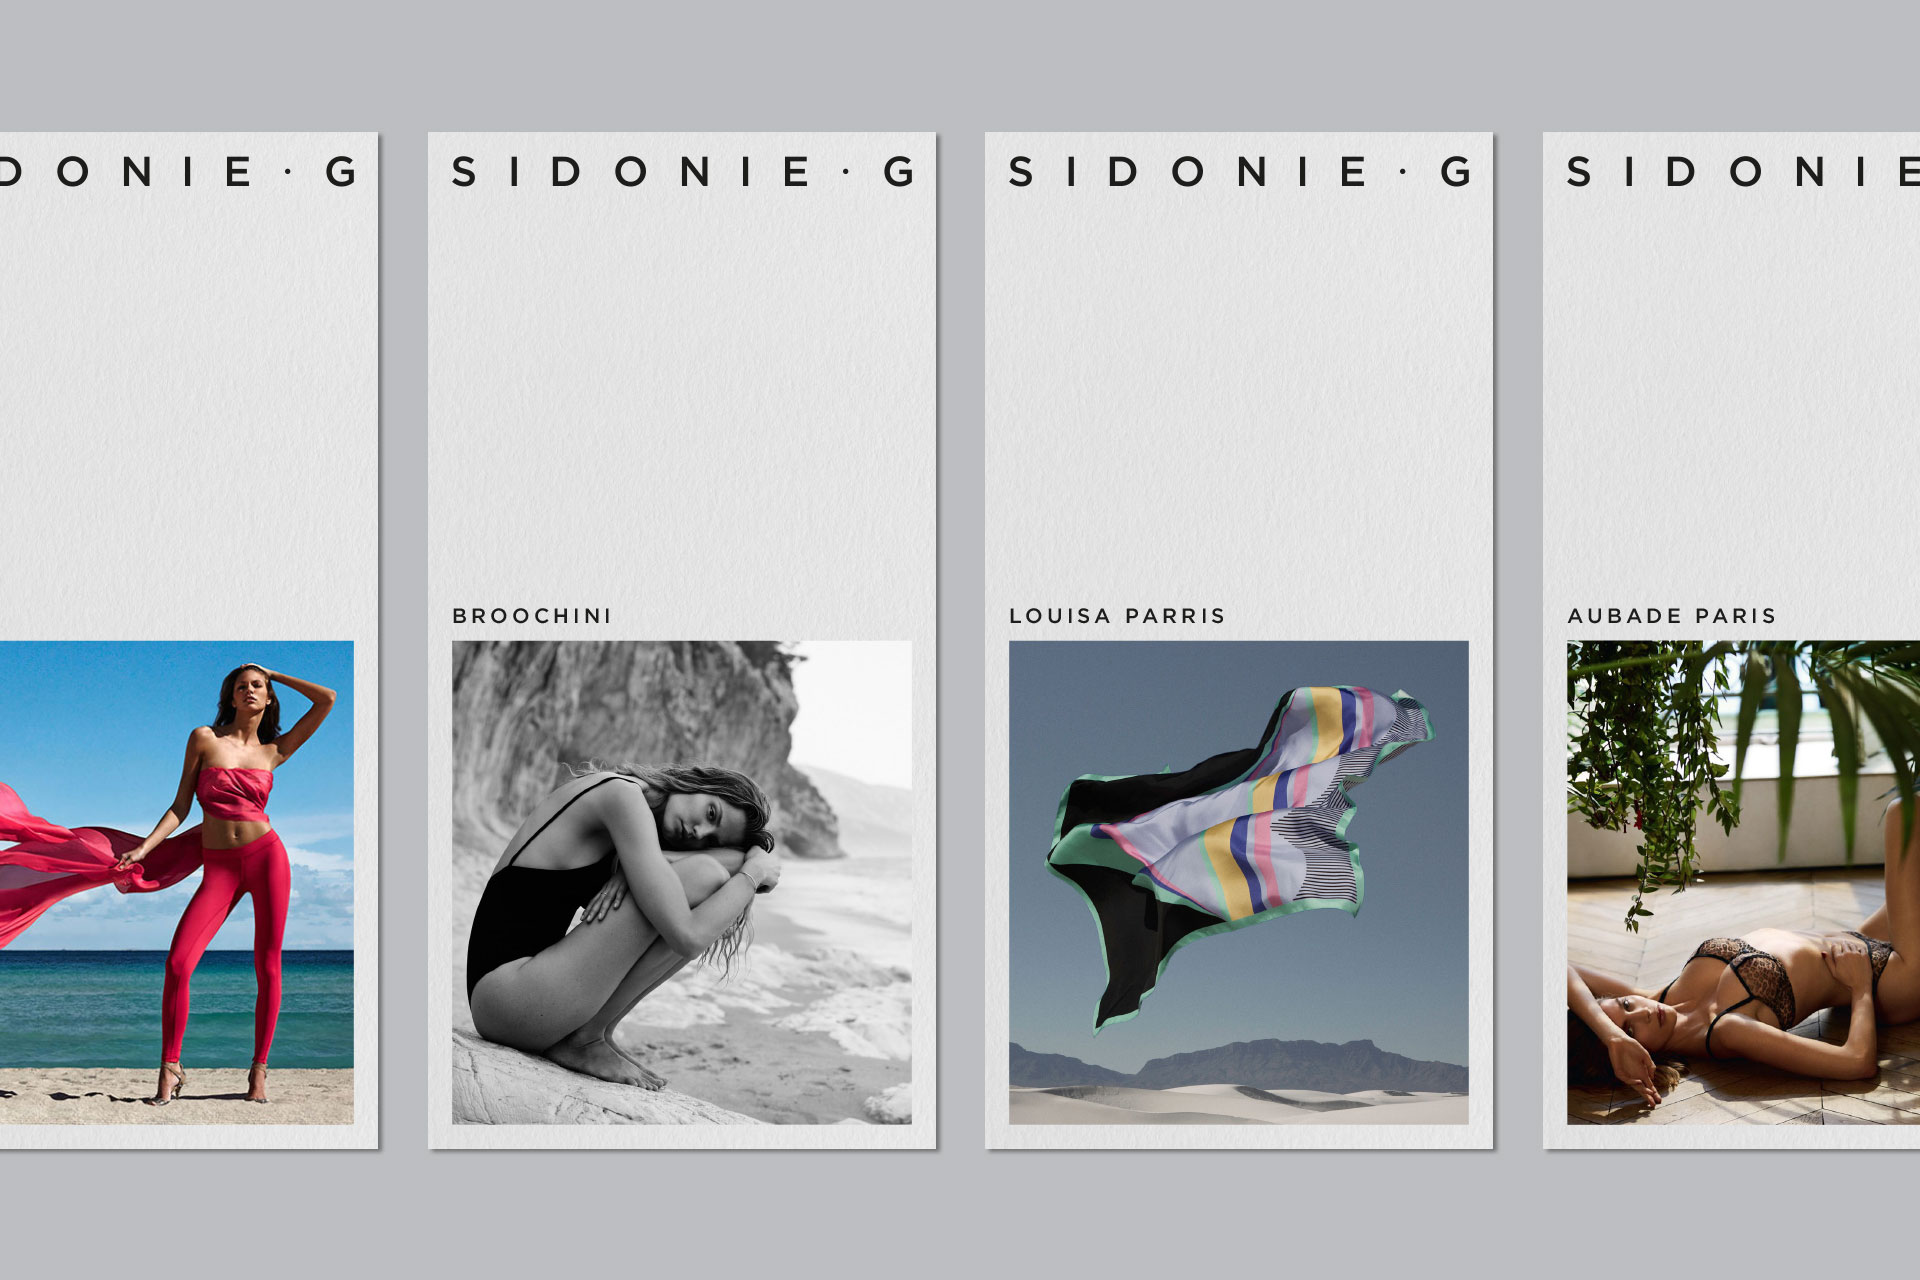 Sidonie G Communications 9